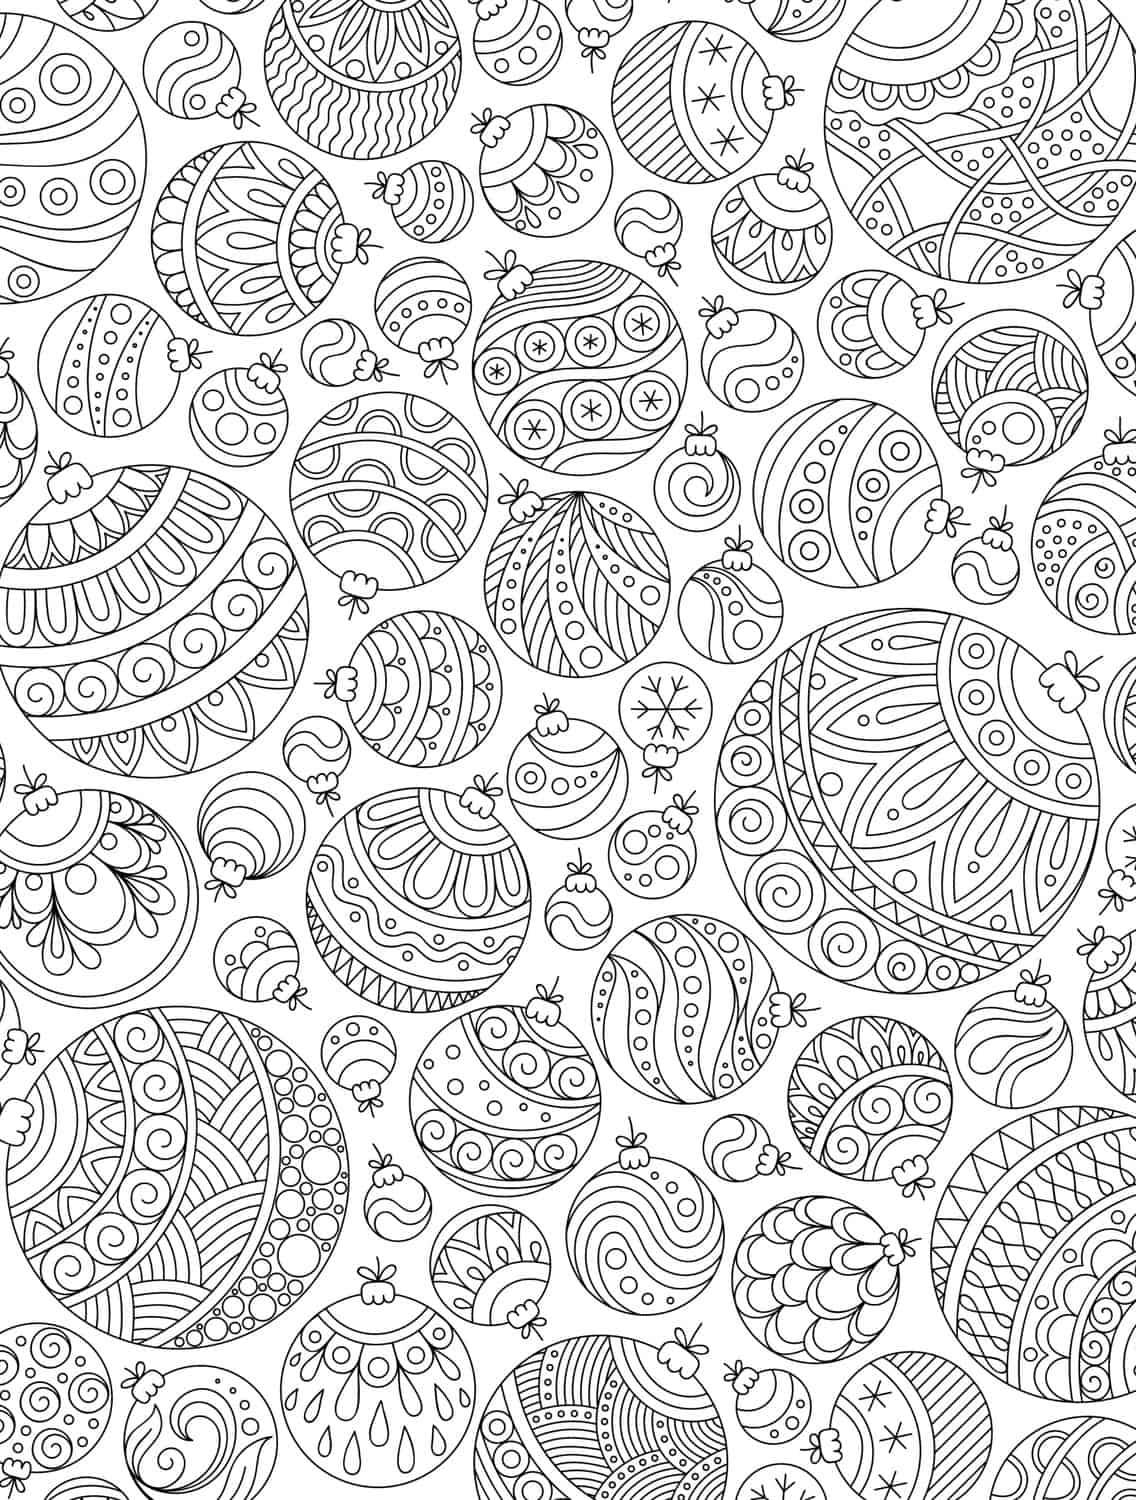 crazy coloring pages for adults - photo#11